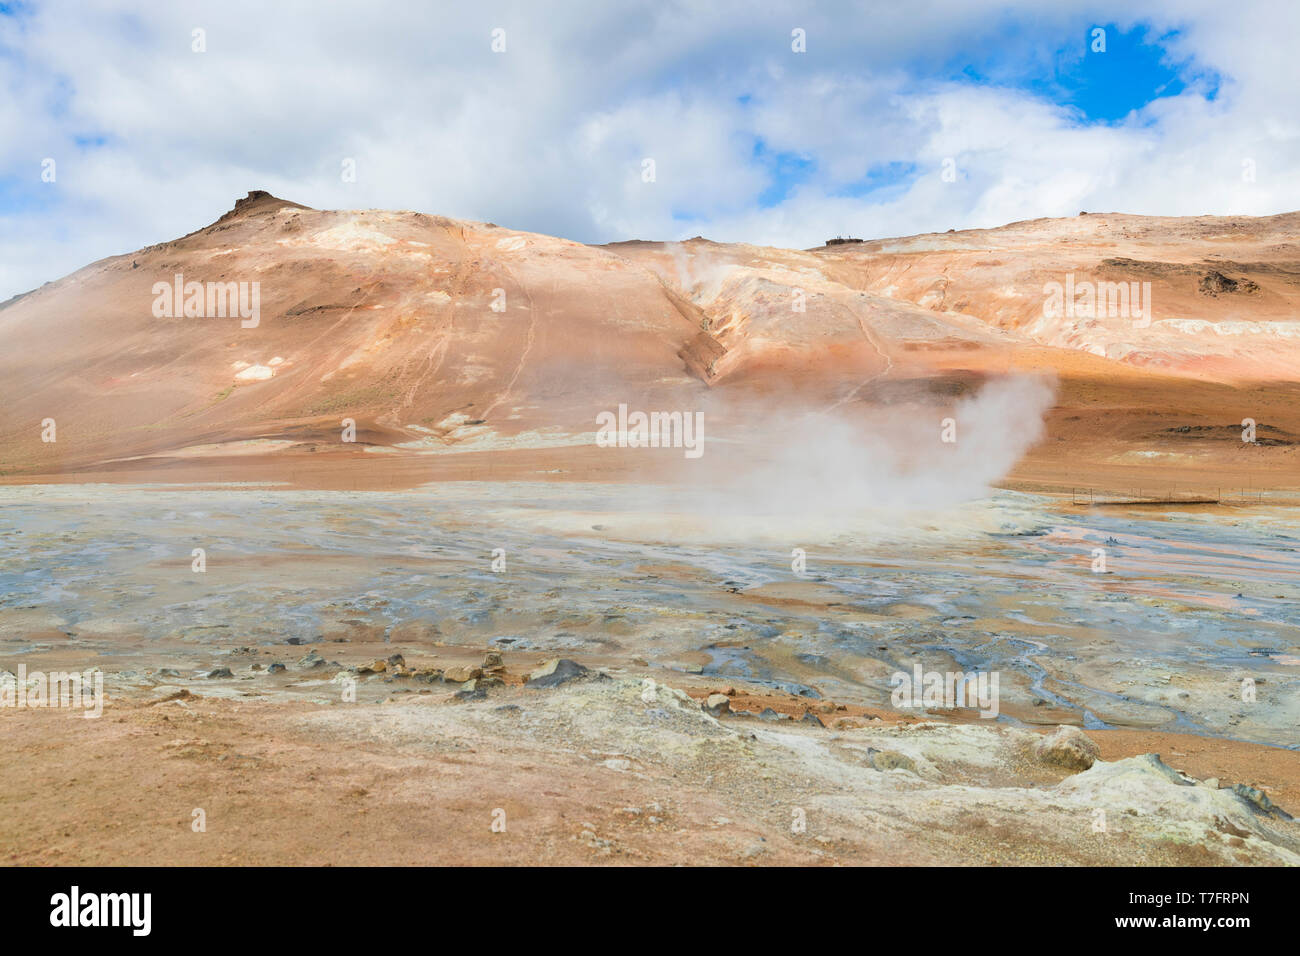 Landscape at Hverir, red sulphurous soil with fumaroles Stock Photo